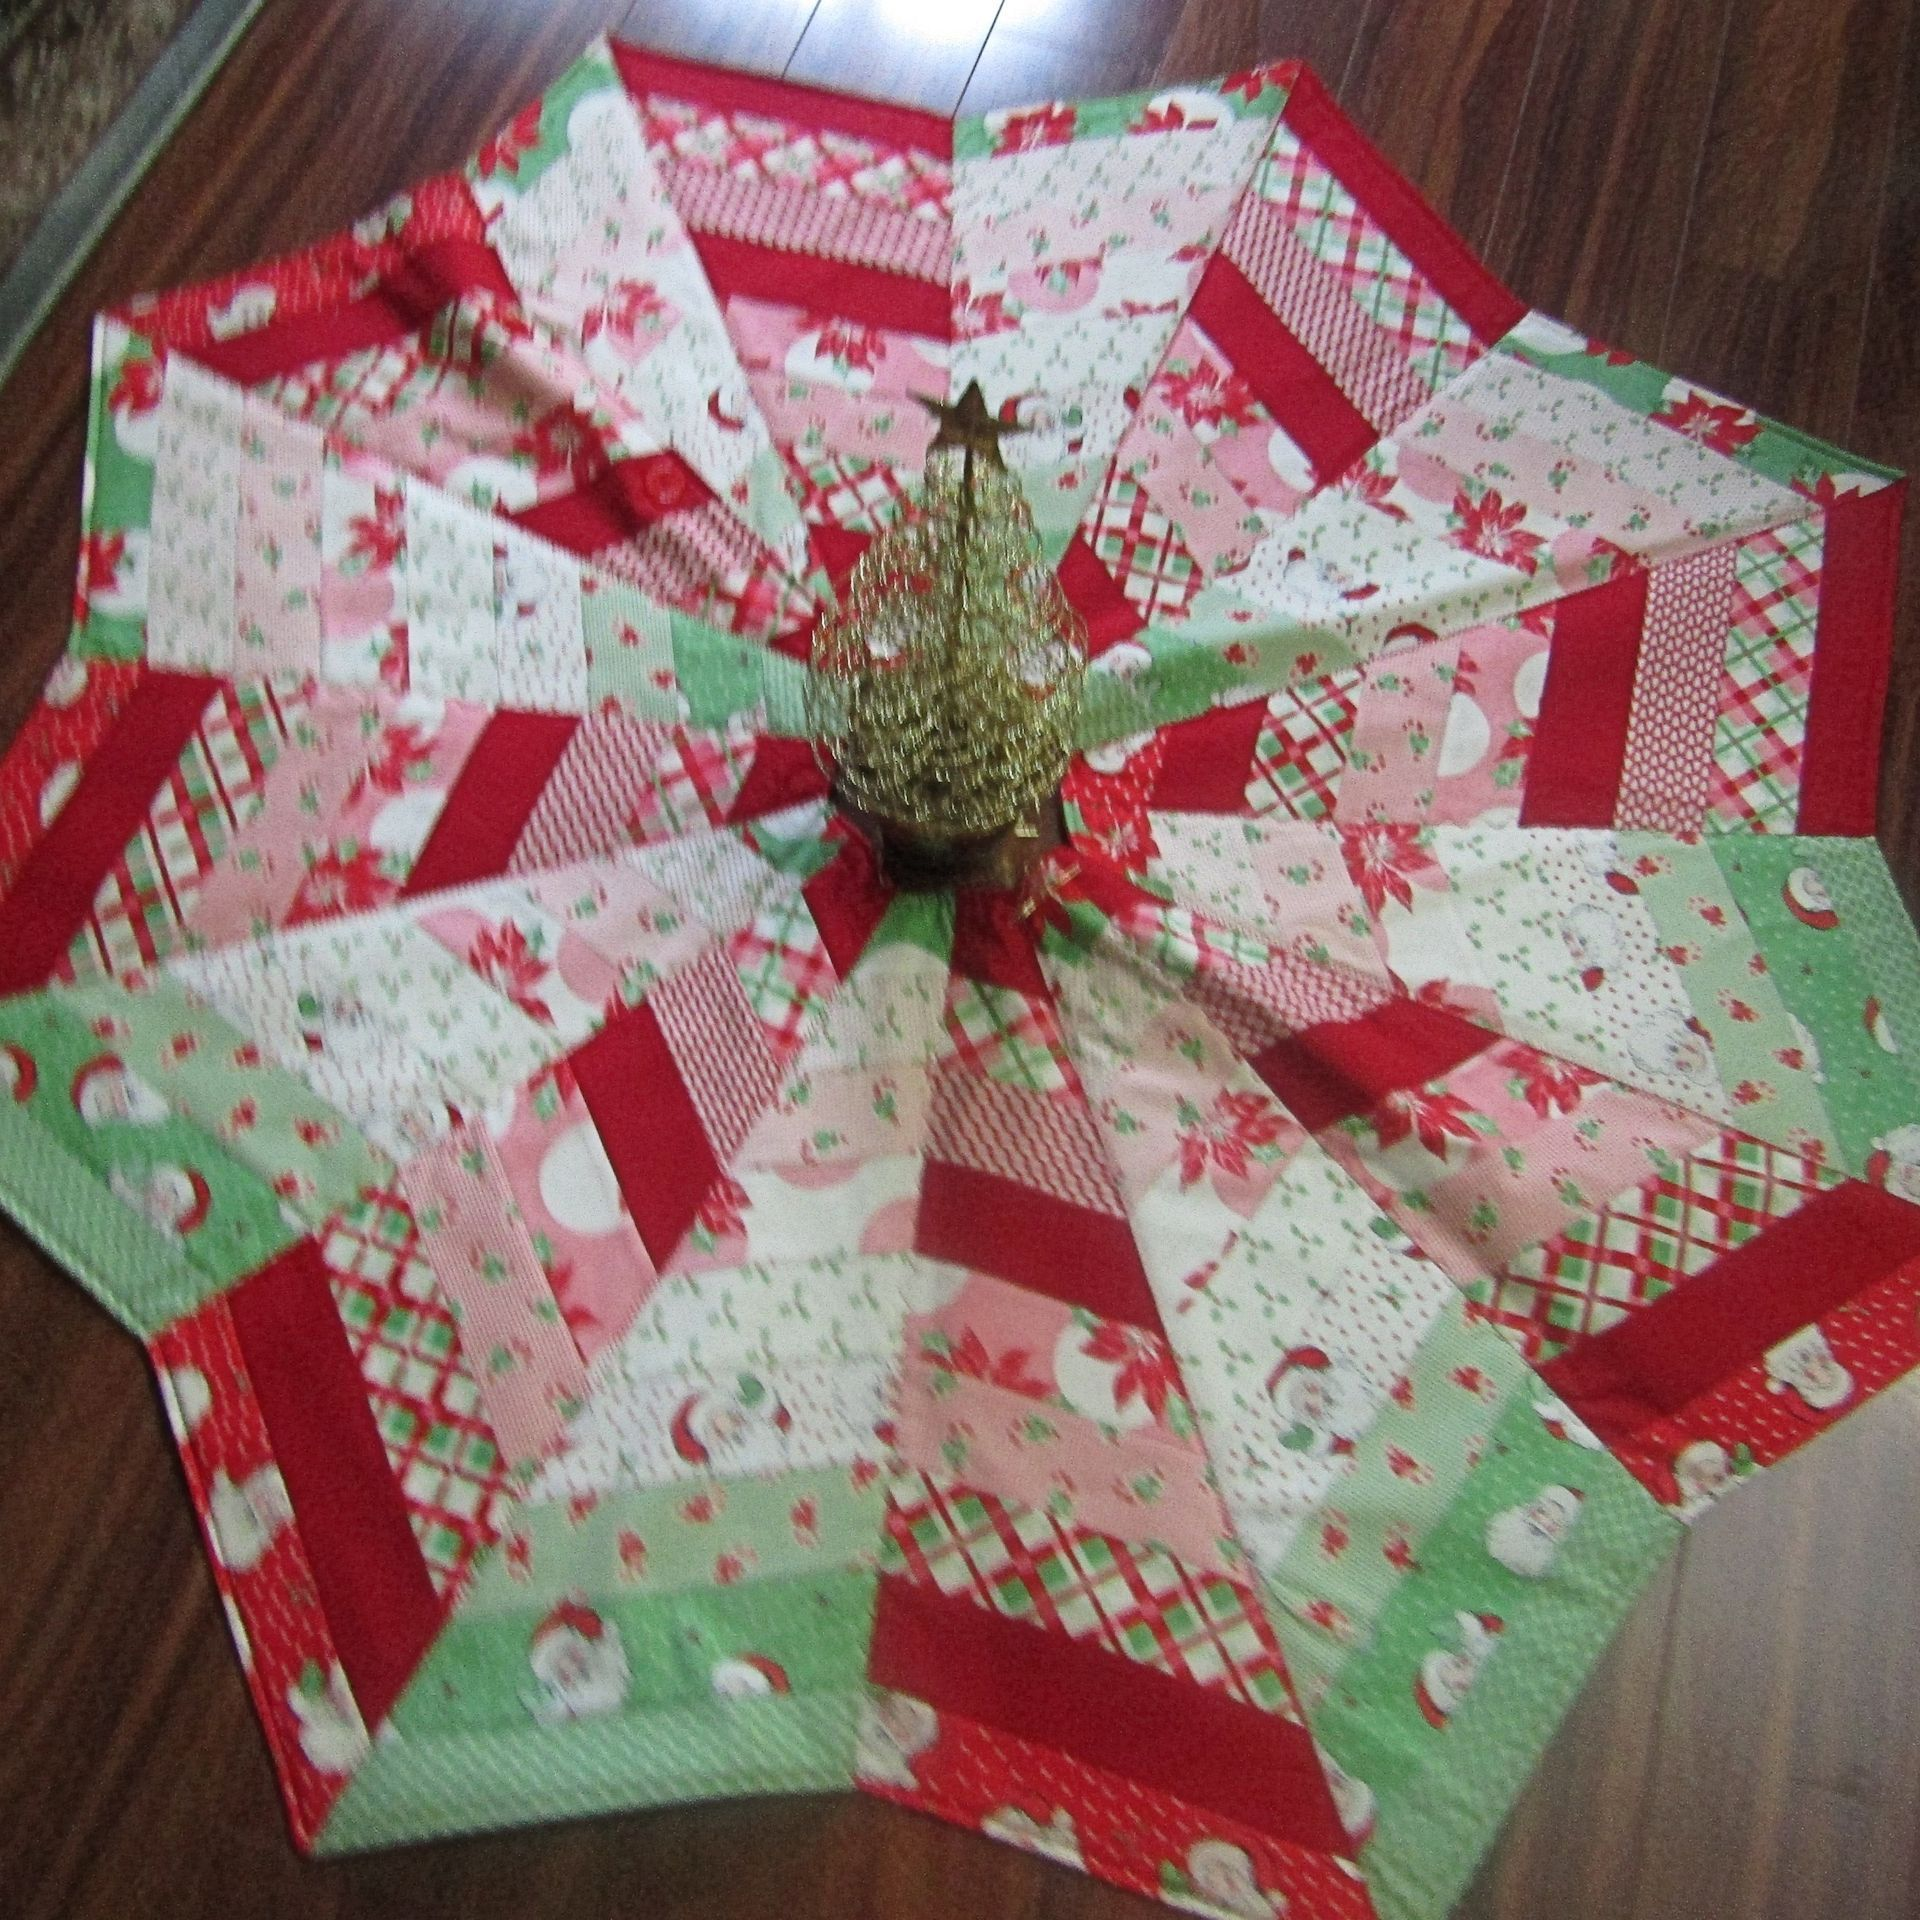 Star Christmas Tree Skirt, Red, White, Green(画像あり) クリスマス, 小物